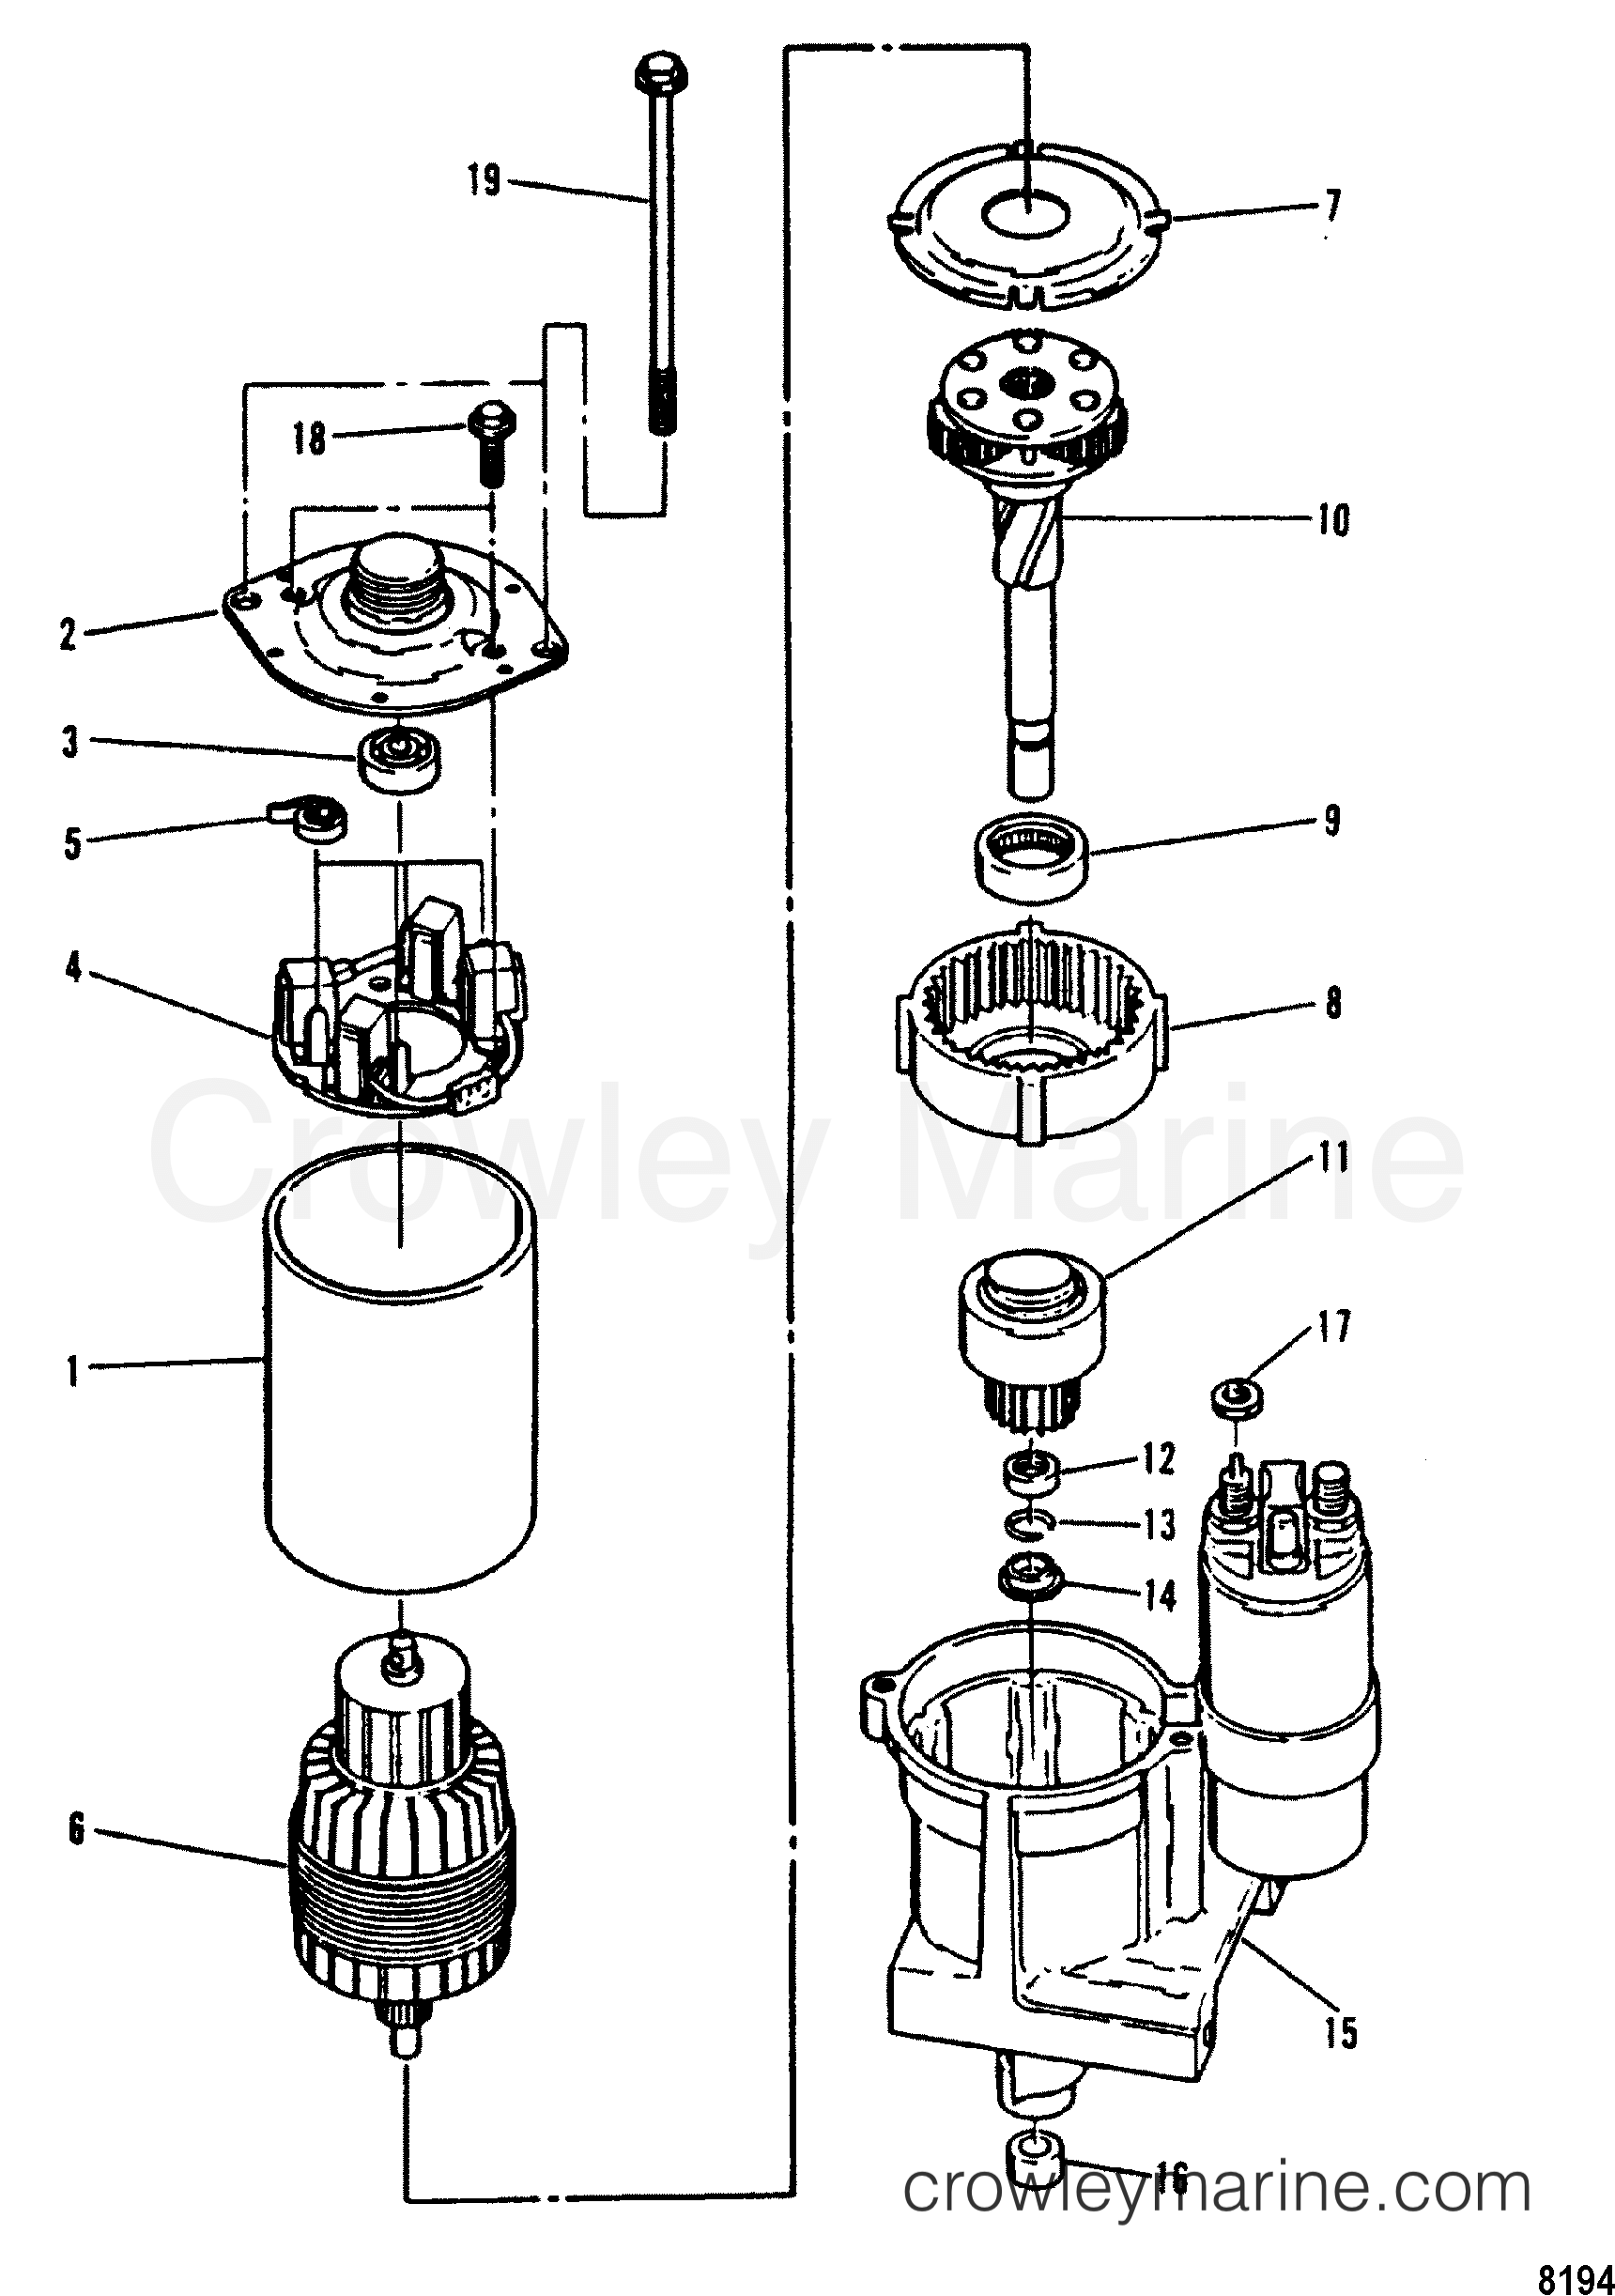 Delcoremy 10si Alternator Exploded View Parts Breakdown 27si Delco Remy Wiring Diagram